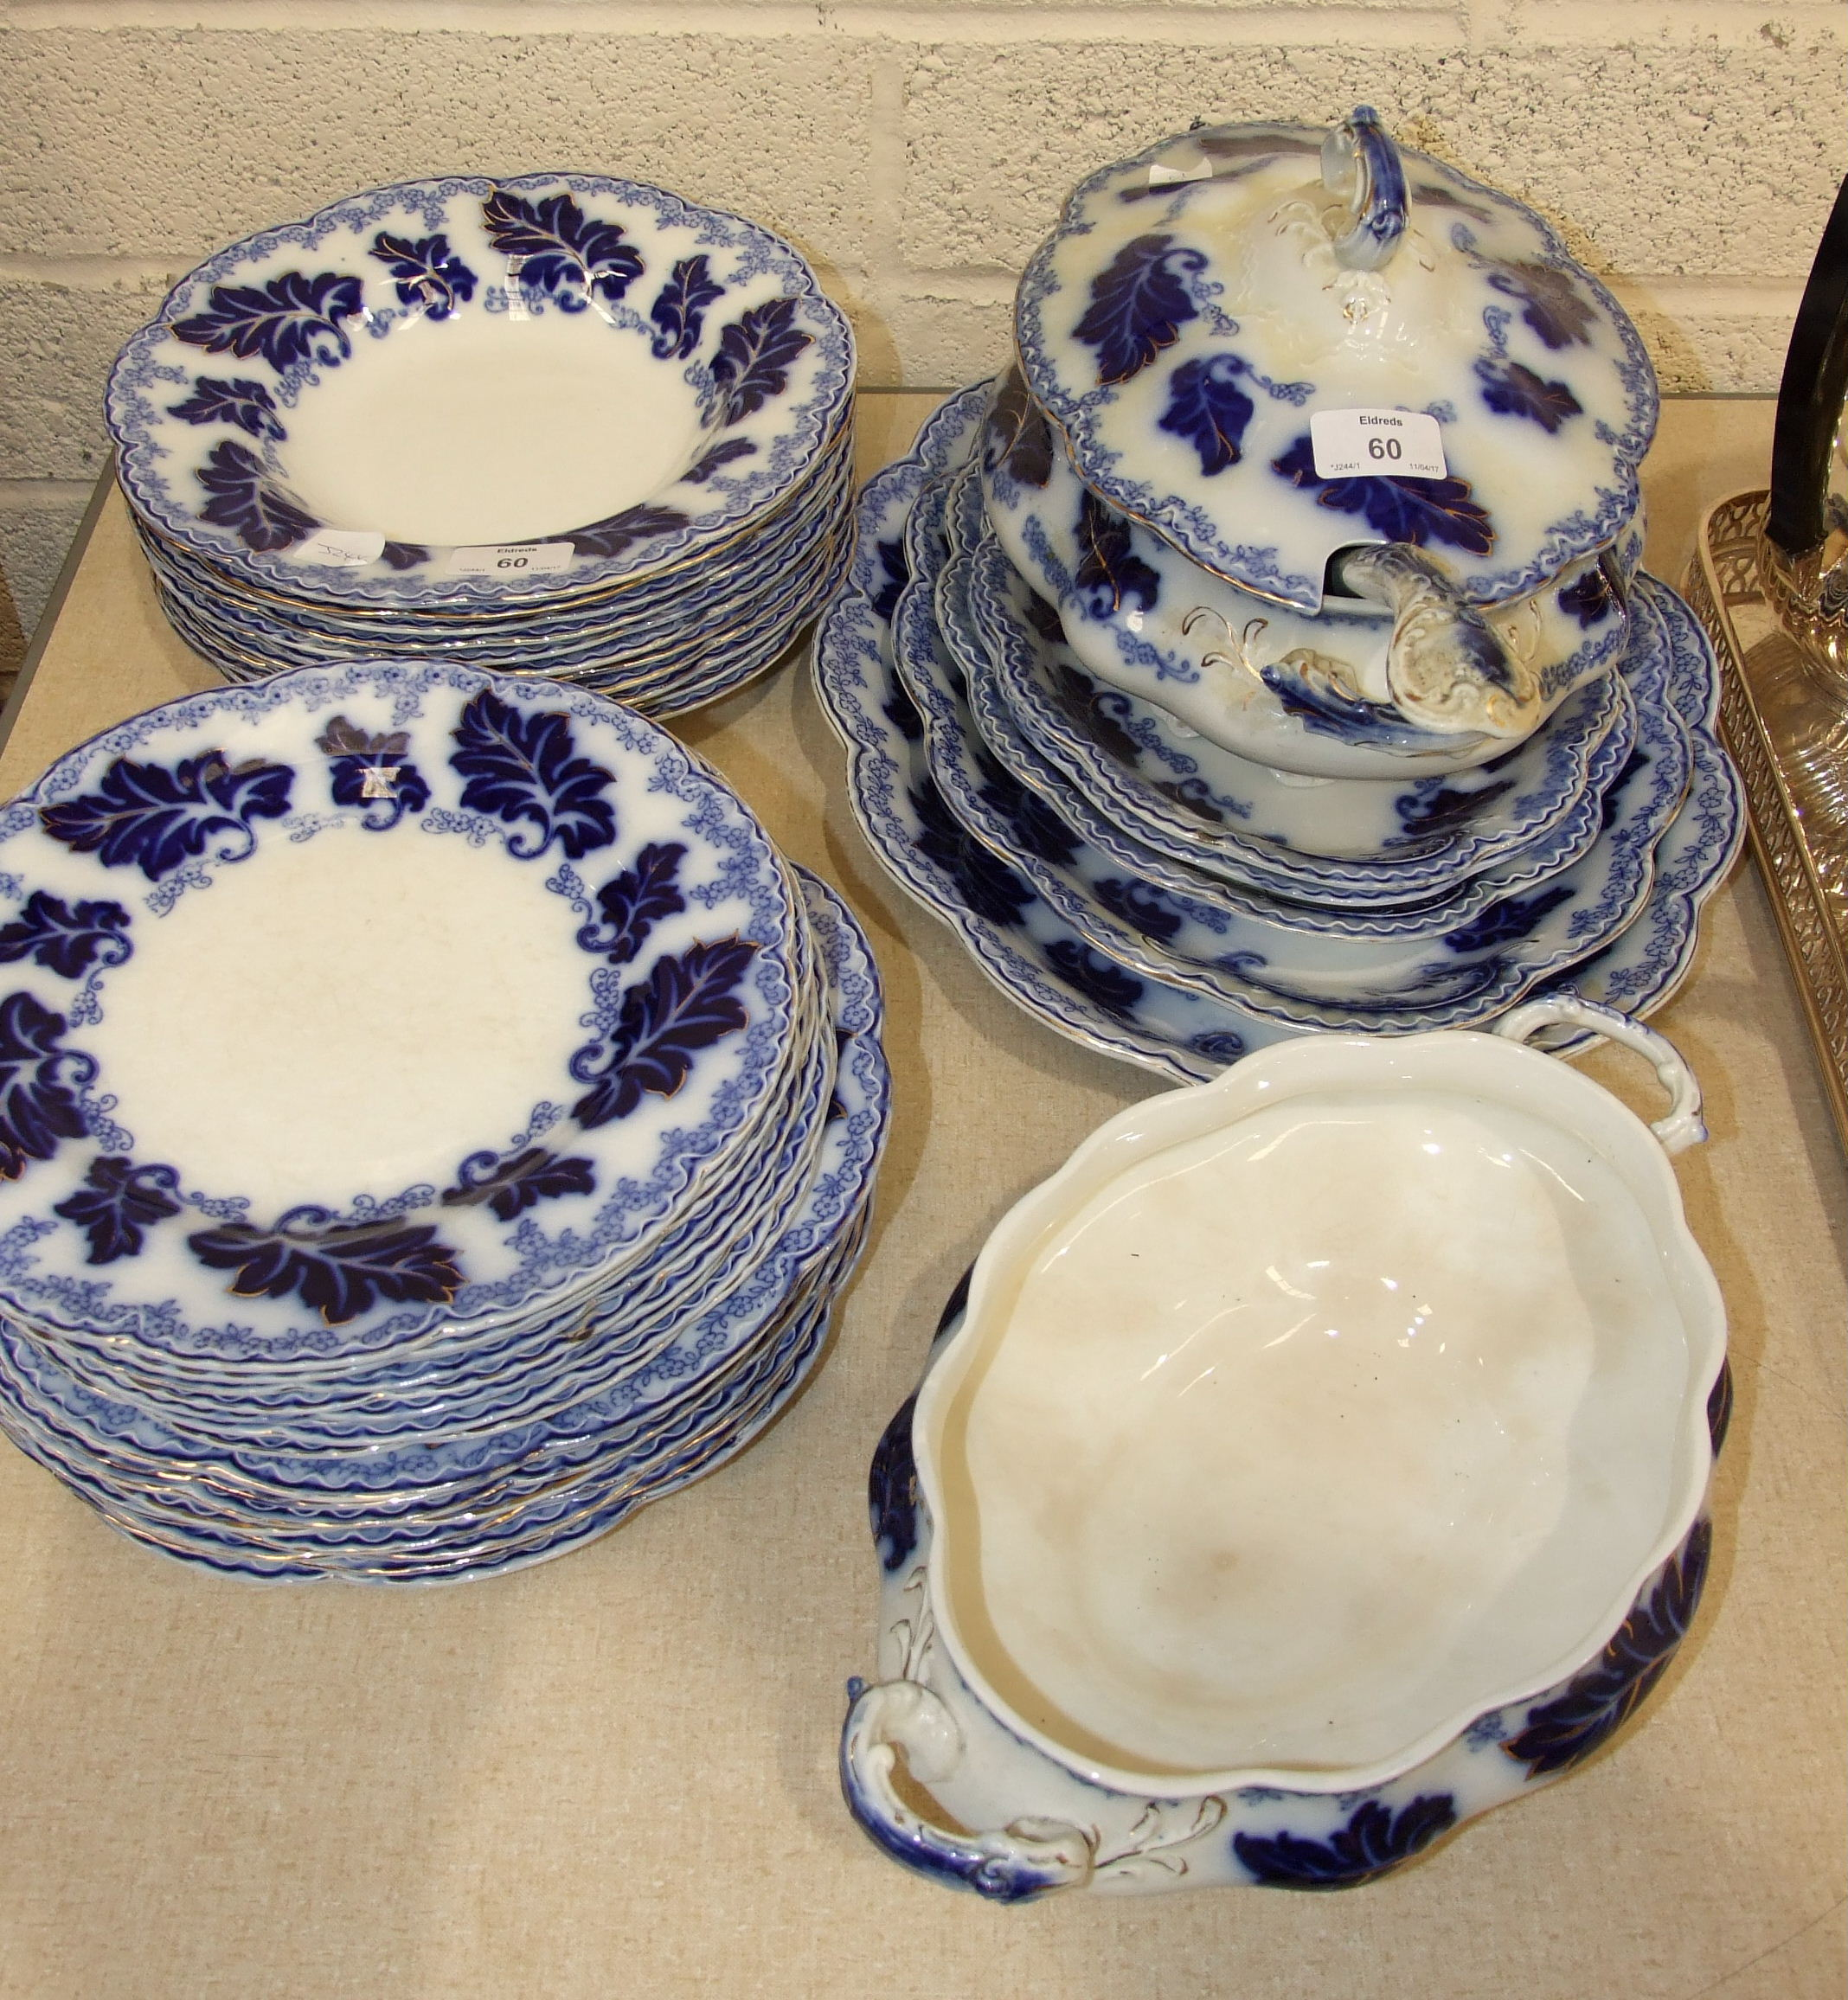 """Lot 60 - Thirty-five pieces of Johnson Bros """"Normandy"""" blue and white dinnerware, including a soup tureen and"""